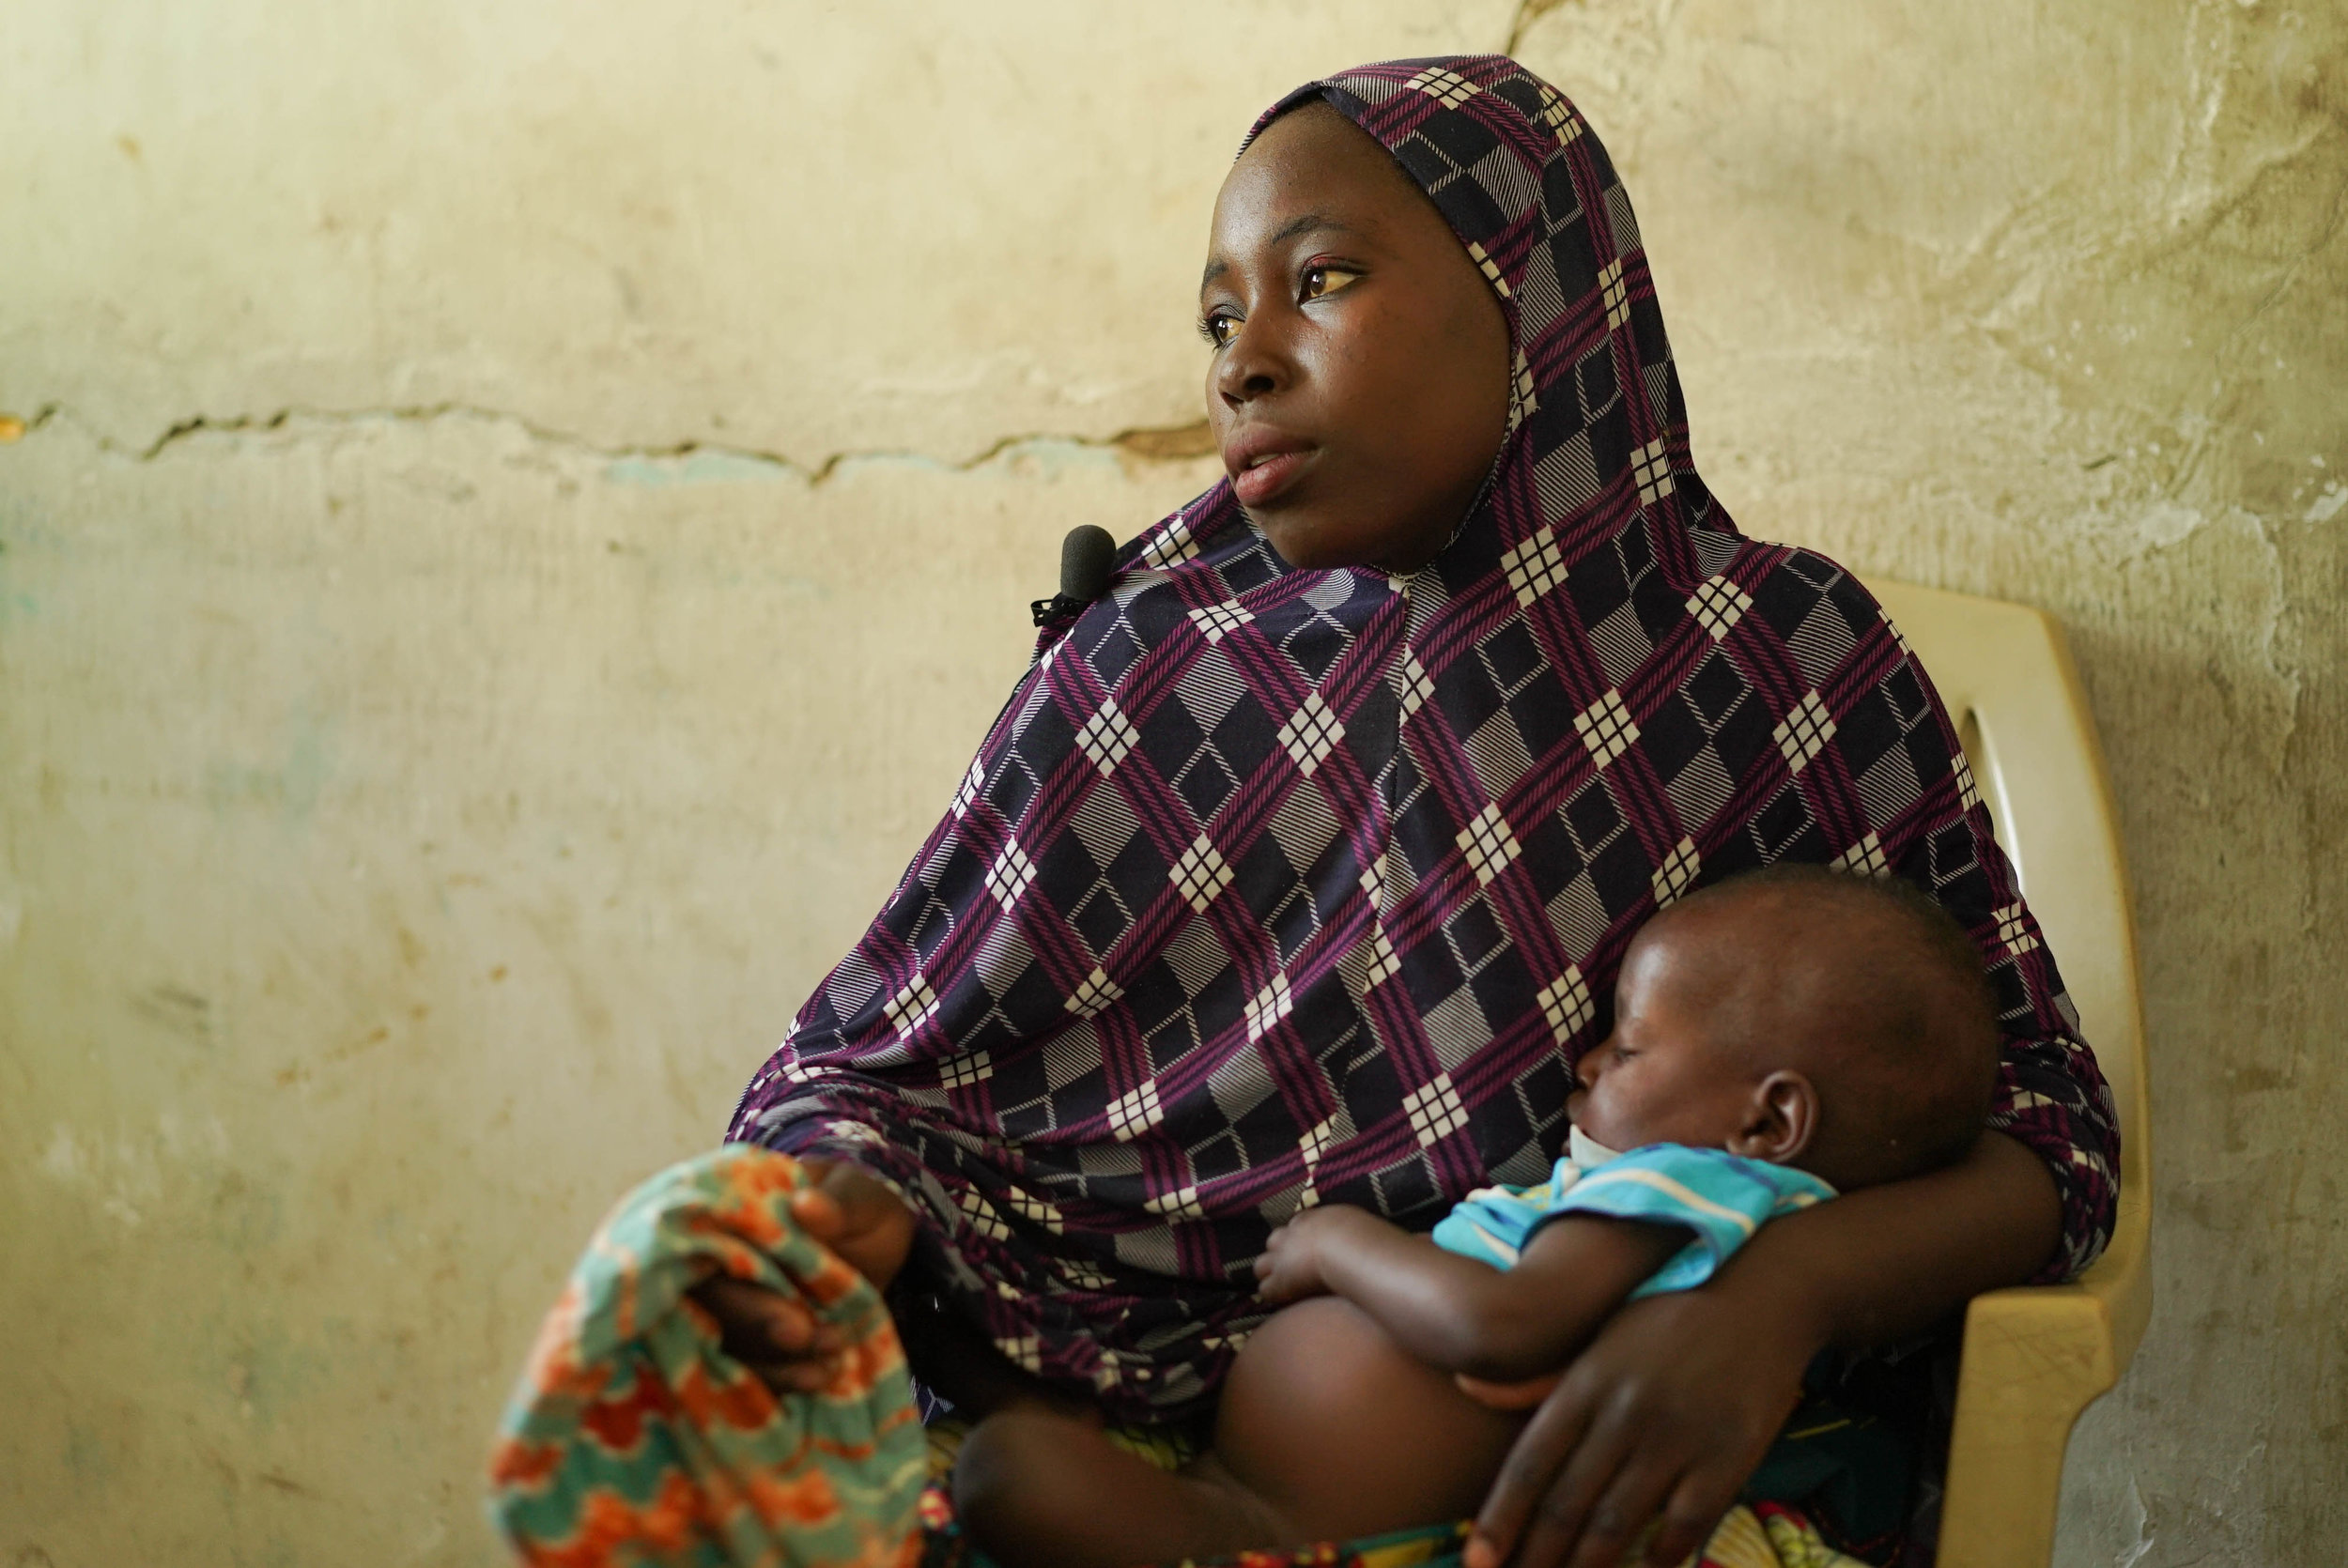 Just Food: Coping with the Crisis - Experience the aftermath of Boko Haram's ten year insurgency in Nigeria, as over 1.8 million displaced Nigerians, many living in Internally Displaced Persons (IDP) Camps, struggle to find a single meal in one of the worst food crises of our time.